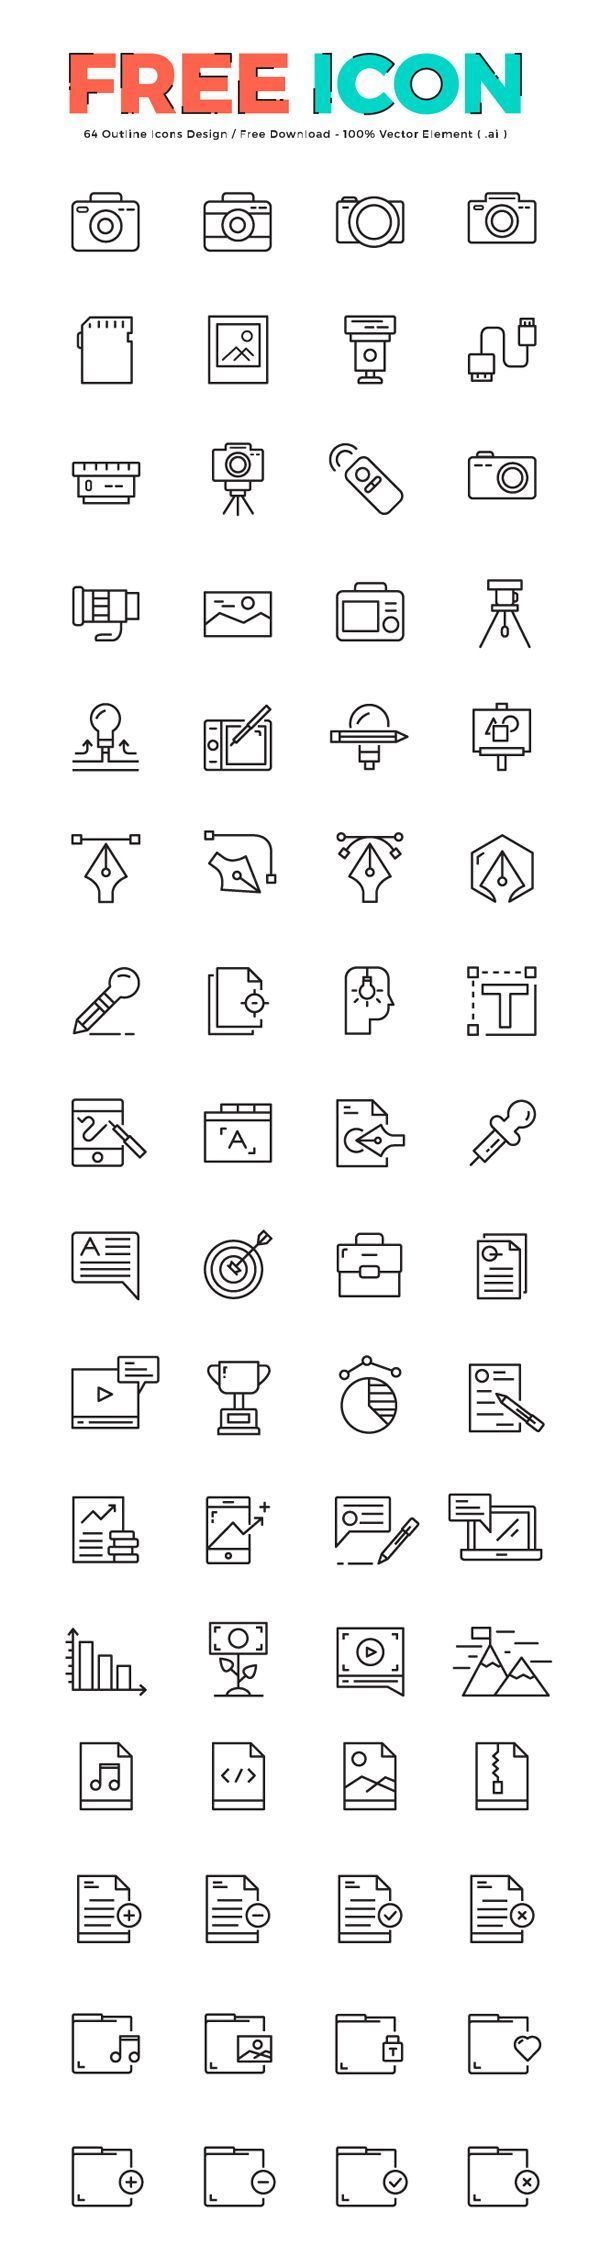 64 Free Outline Icons If You Like Ux, Design, Or Design Thinking,